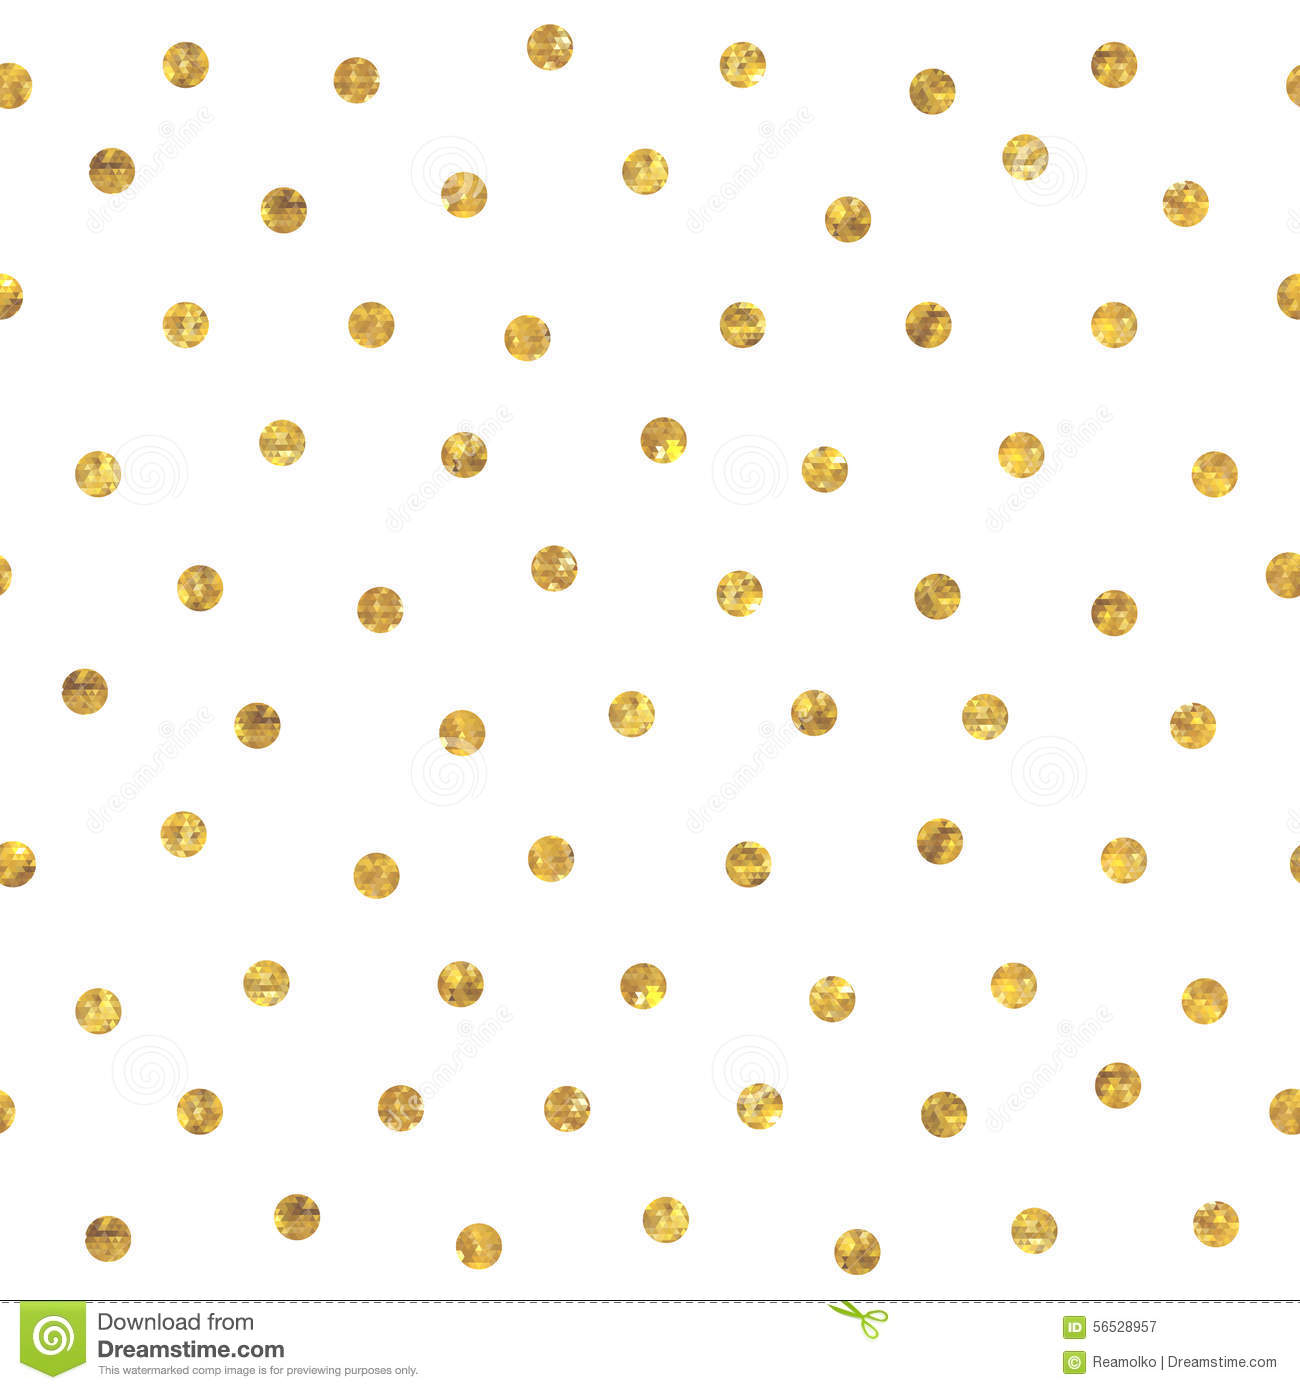 Black And White Polka Dot Wallpaper Border Seamless Polka Dot Golden Pattern Stock Vector Image